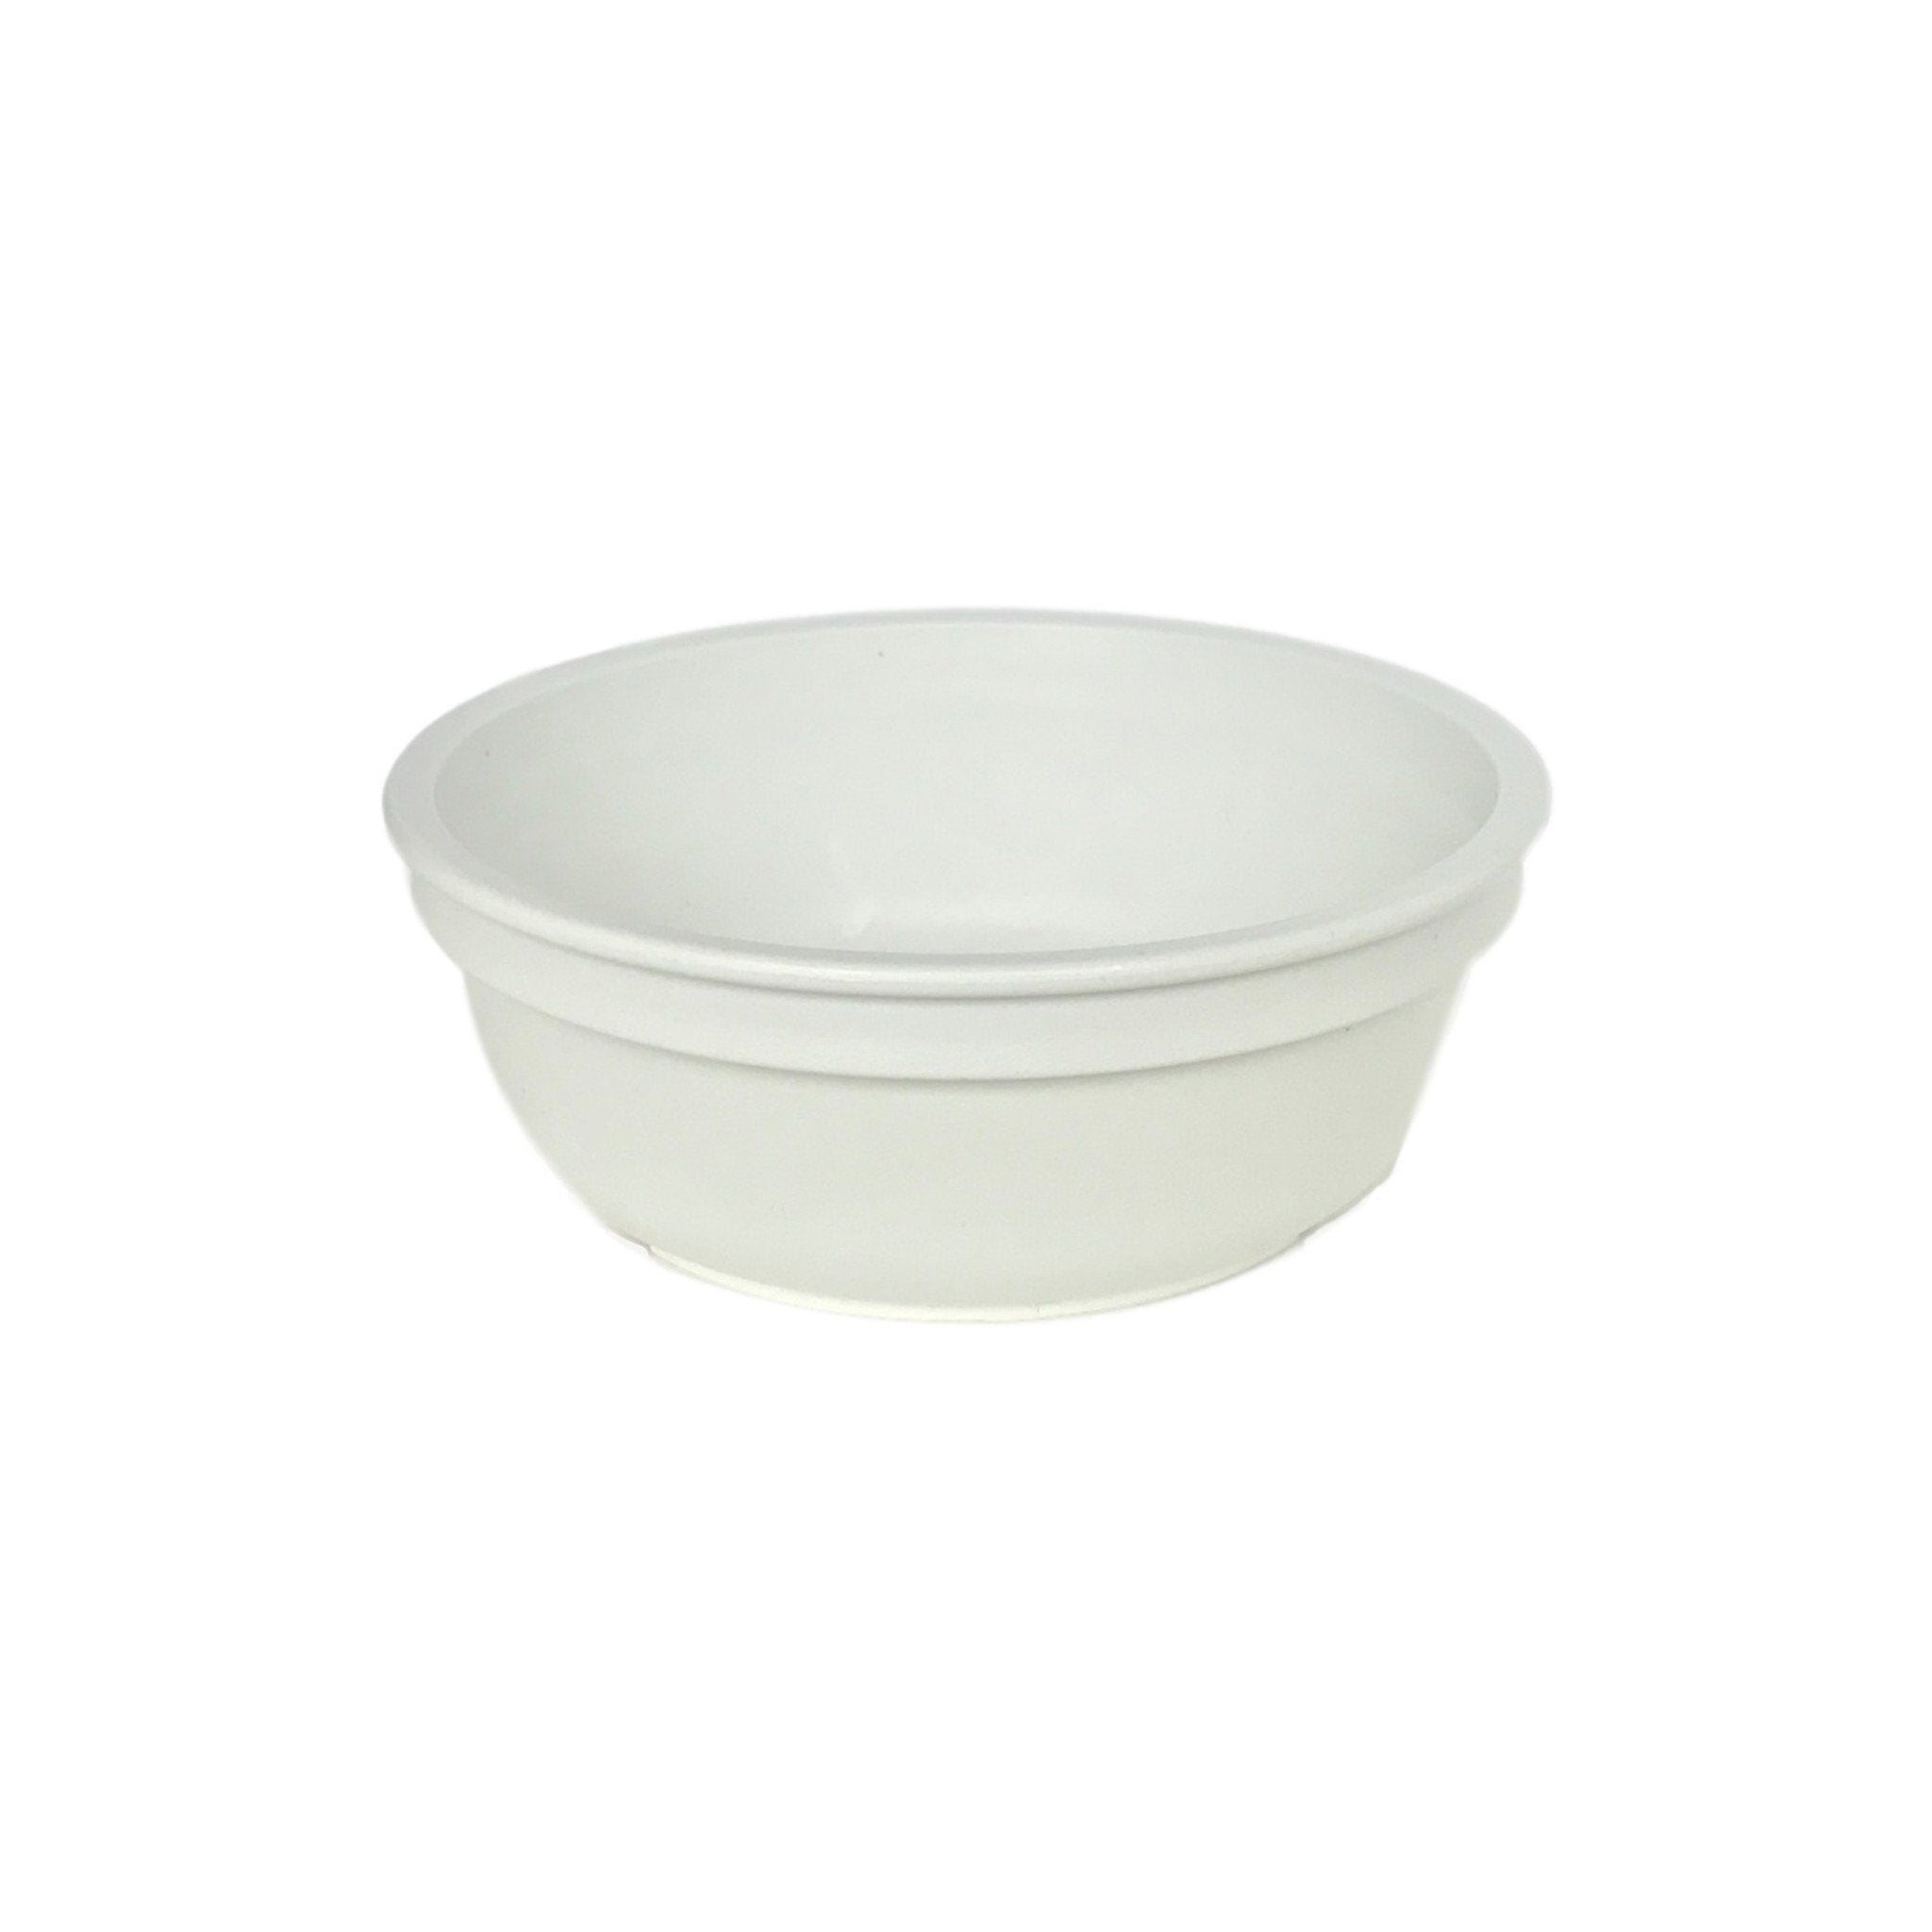 Replay Bowl Replay Lifestyle White at Little Earth Nest Eco Shop